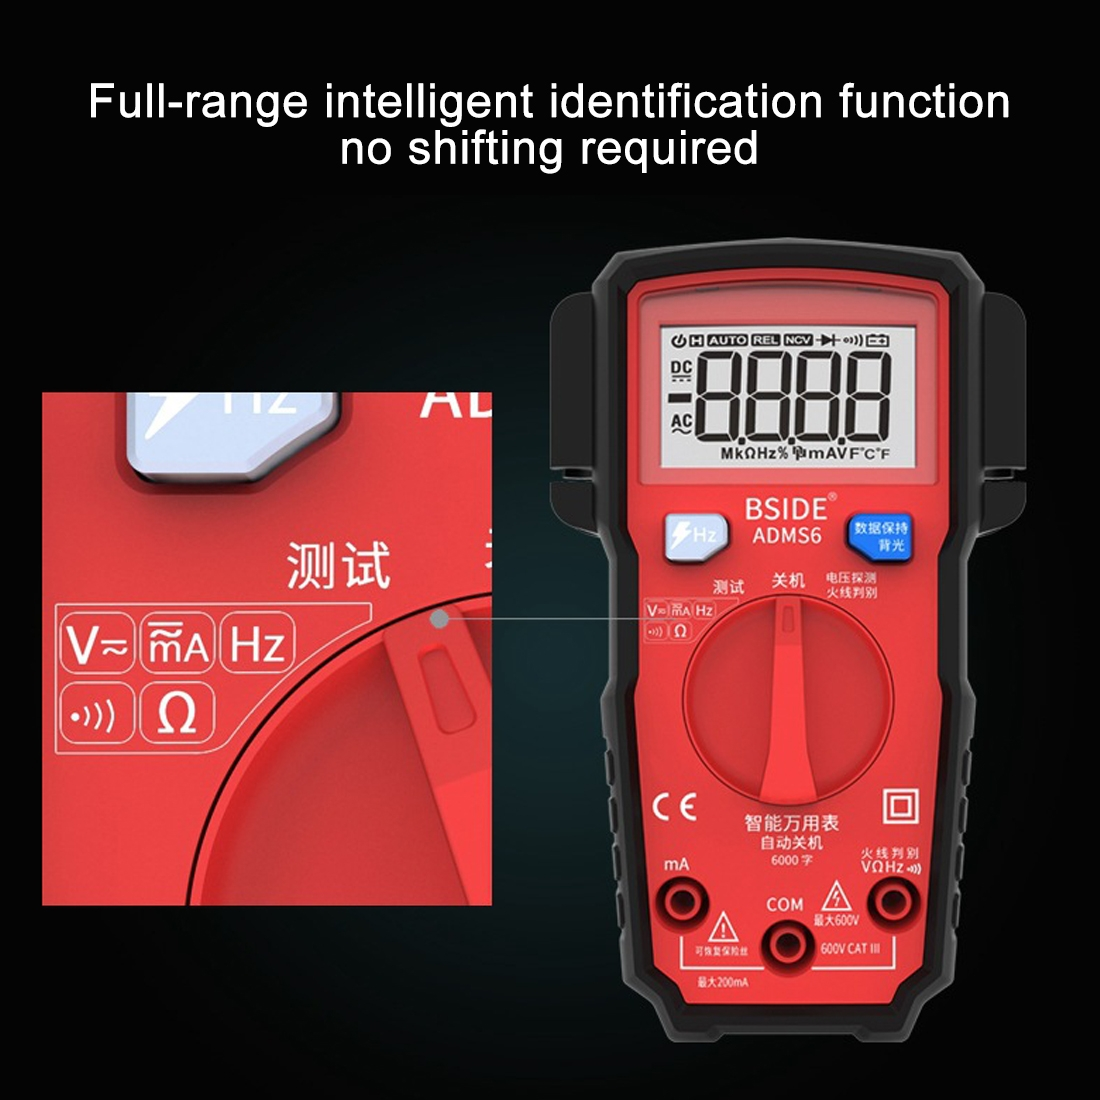 BSIDE ADMS6 High-precision Fully Automatic Small Digital Intelligent Multimeter with HD Digital Display & Shockproof Cover, Support Function Range Switch & Double-sided Pen Holder (Red)